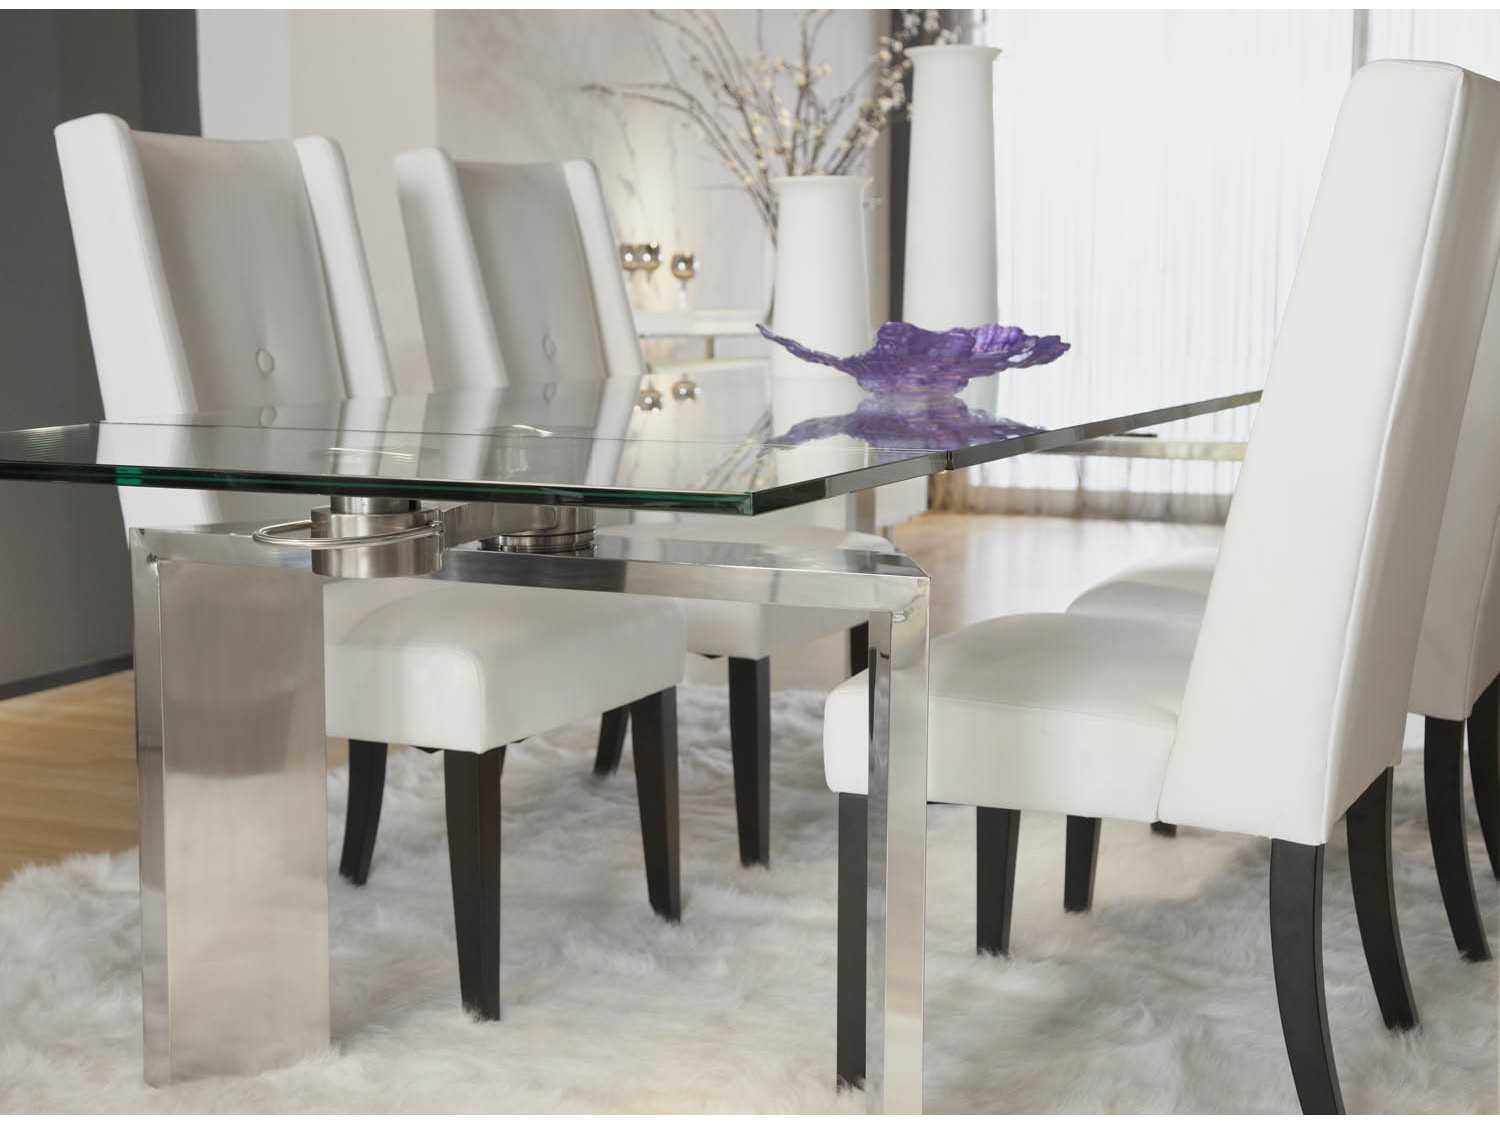 Star Furniture Dining Table: Star International Furniture Ritz Mo Stainless Steel With